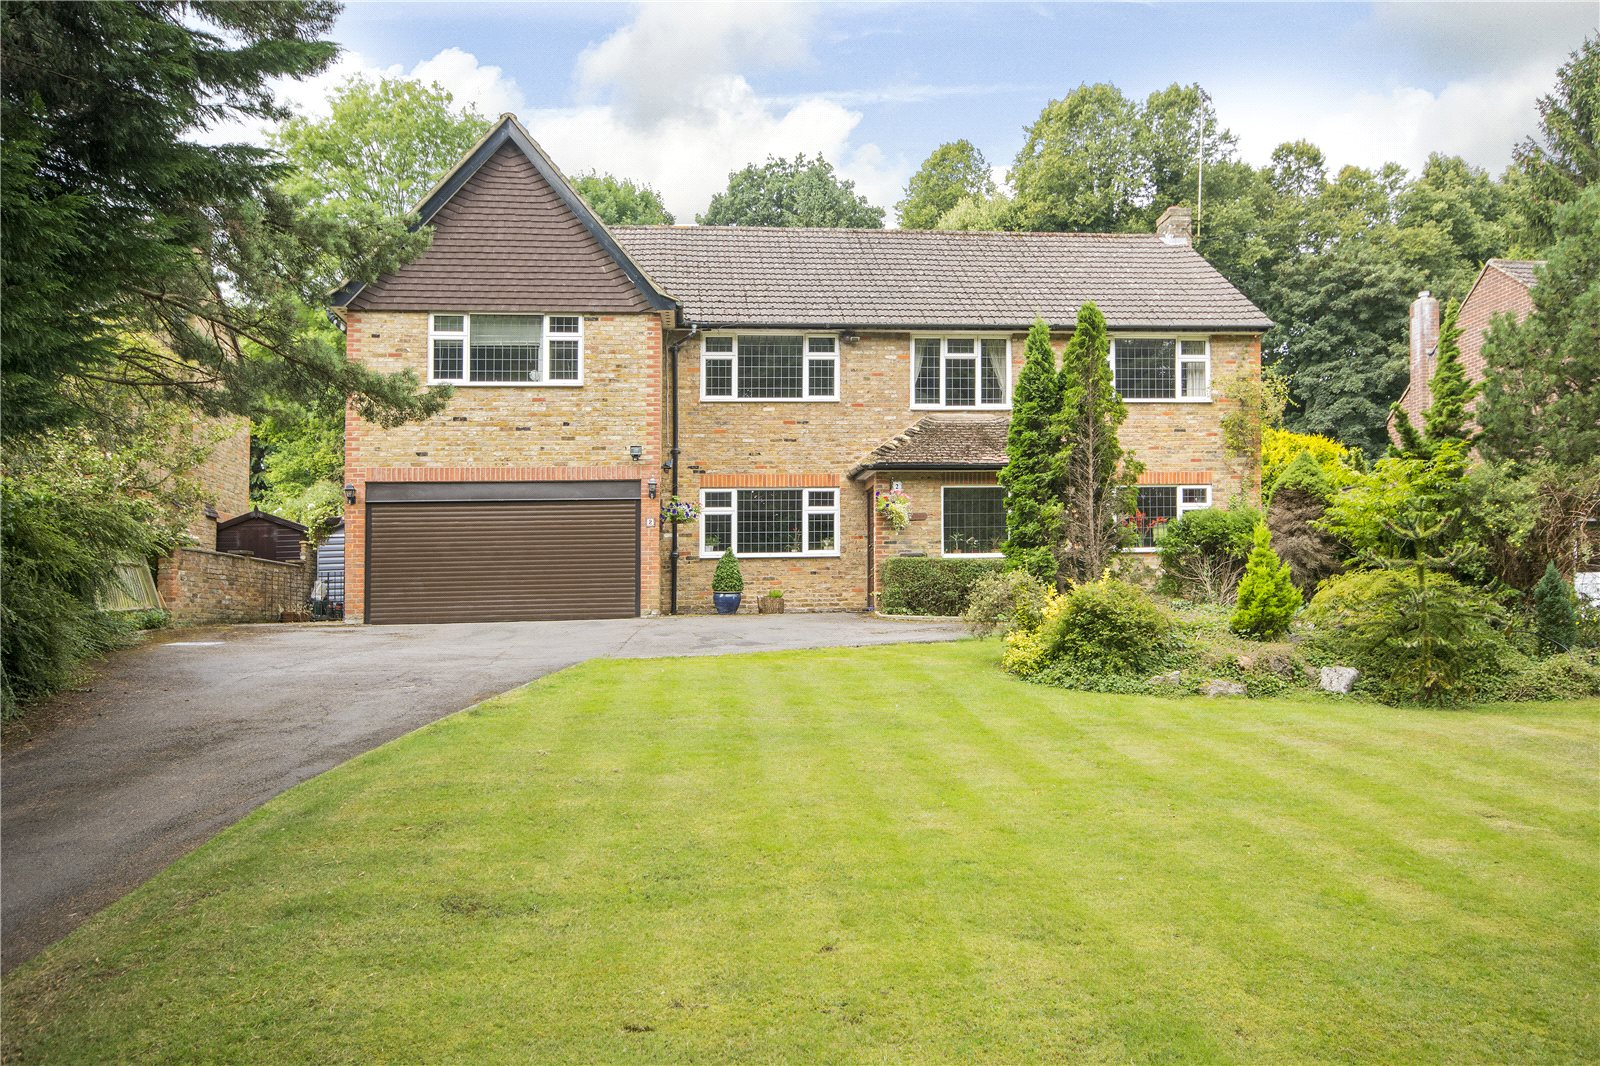 Single Family Home for Sale at Claydon End, Chalfont St Peter, Gerrards Cross, Buckinghamshire, SL9 Gerrards Cross, England